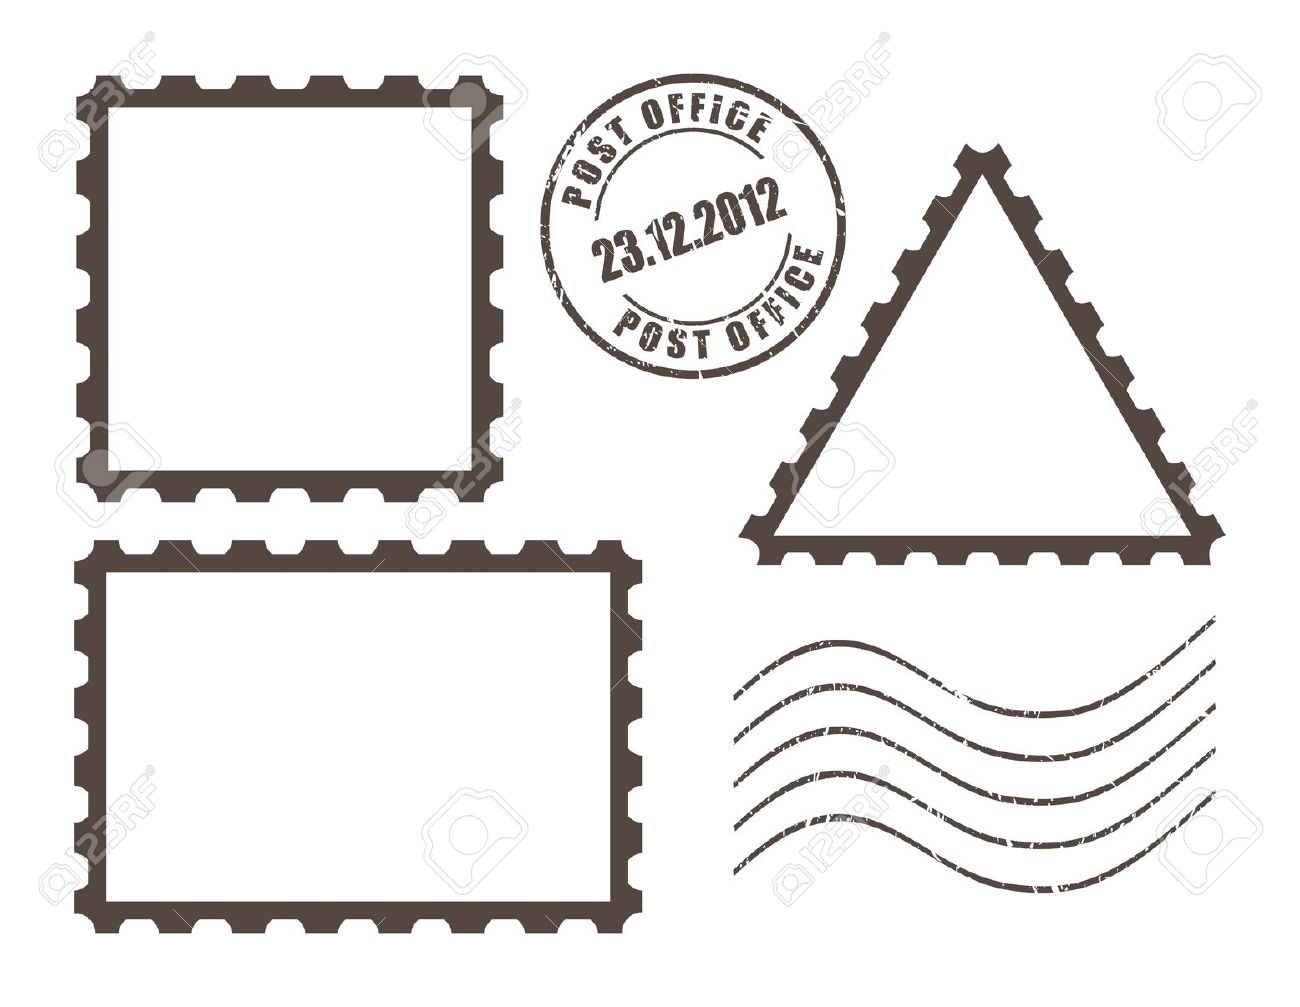 Stamp clipart. Beautiful of letter letters